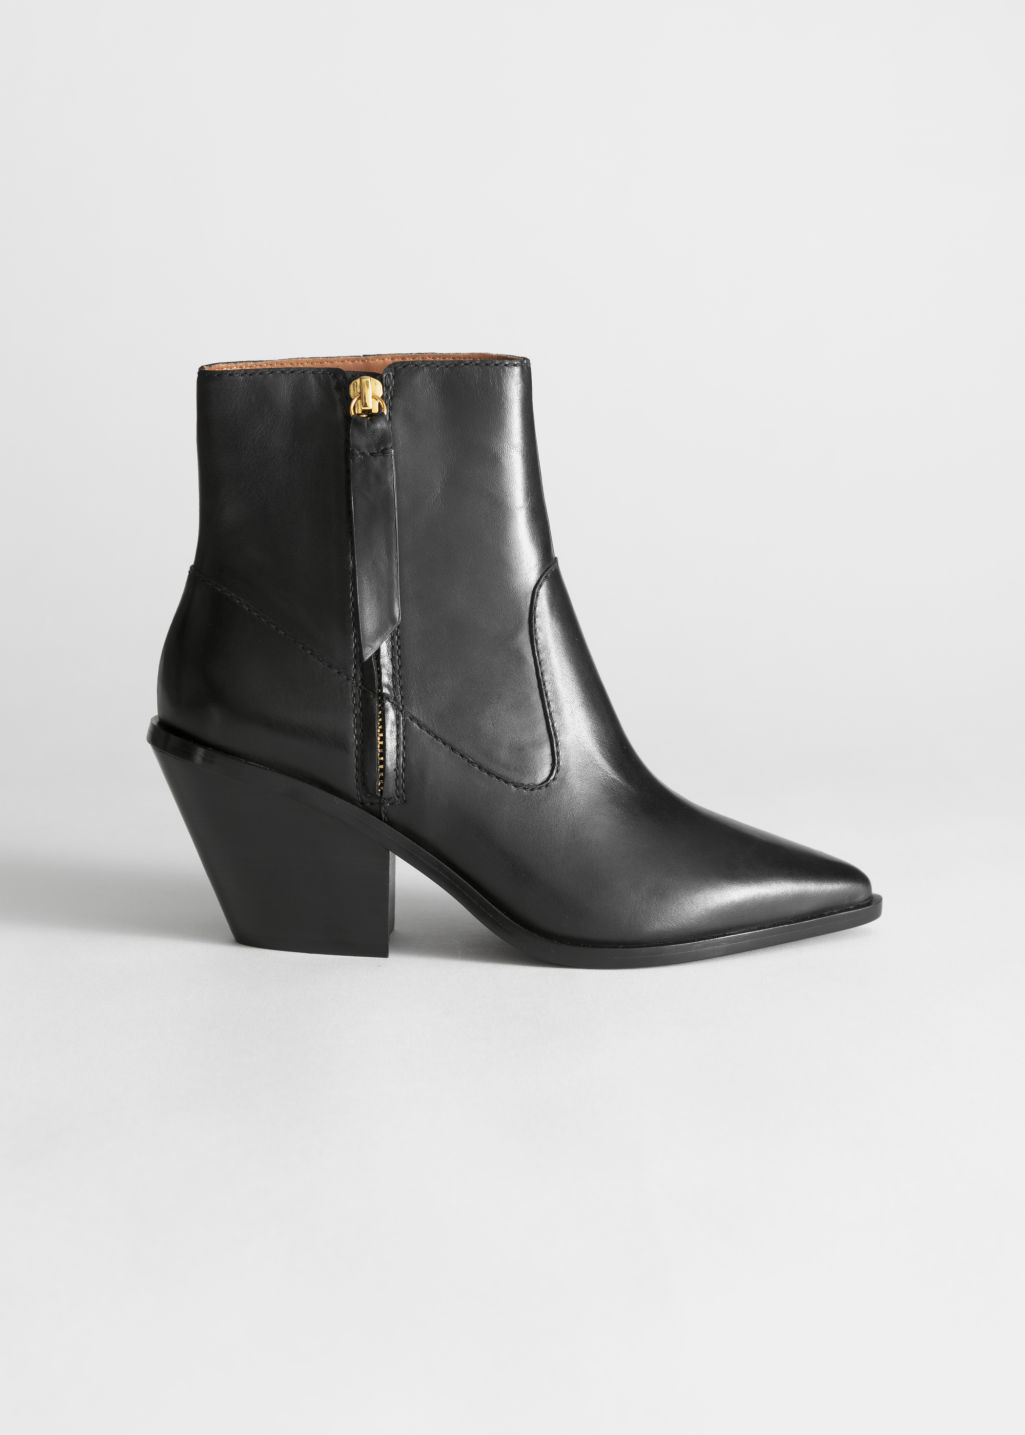 31e5f1f052b1 Leather Cowboy Ankle Boots - Black - Ankleboots -   Other Stories